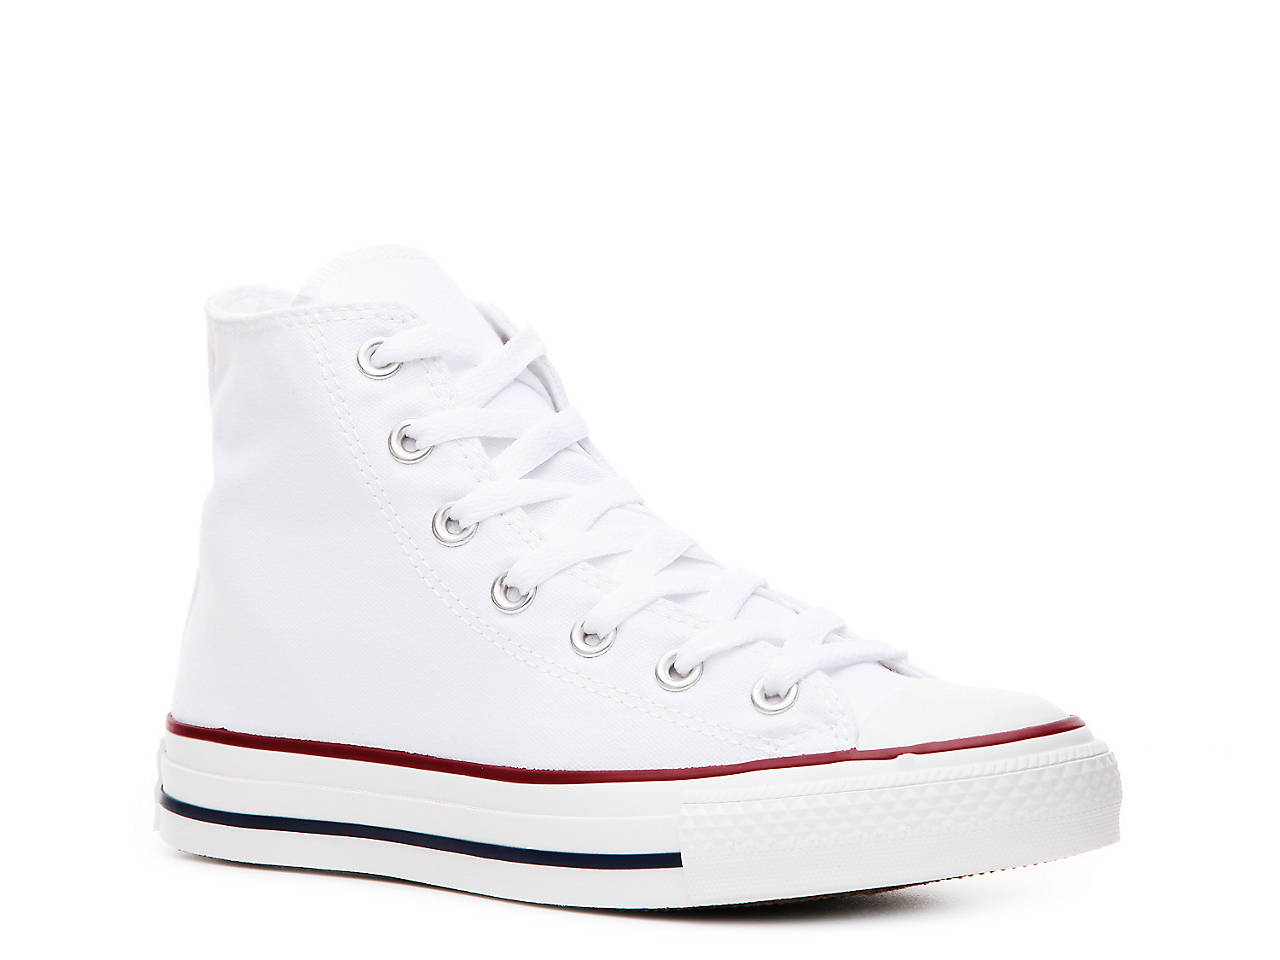 Converse Chuck Taylor All Star High-Top Sneaker - Women s Women s ... 280d70806